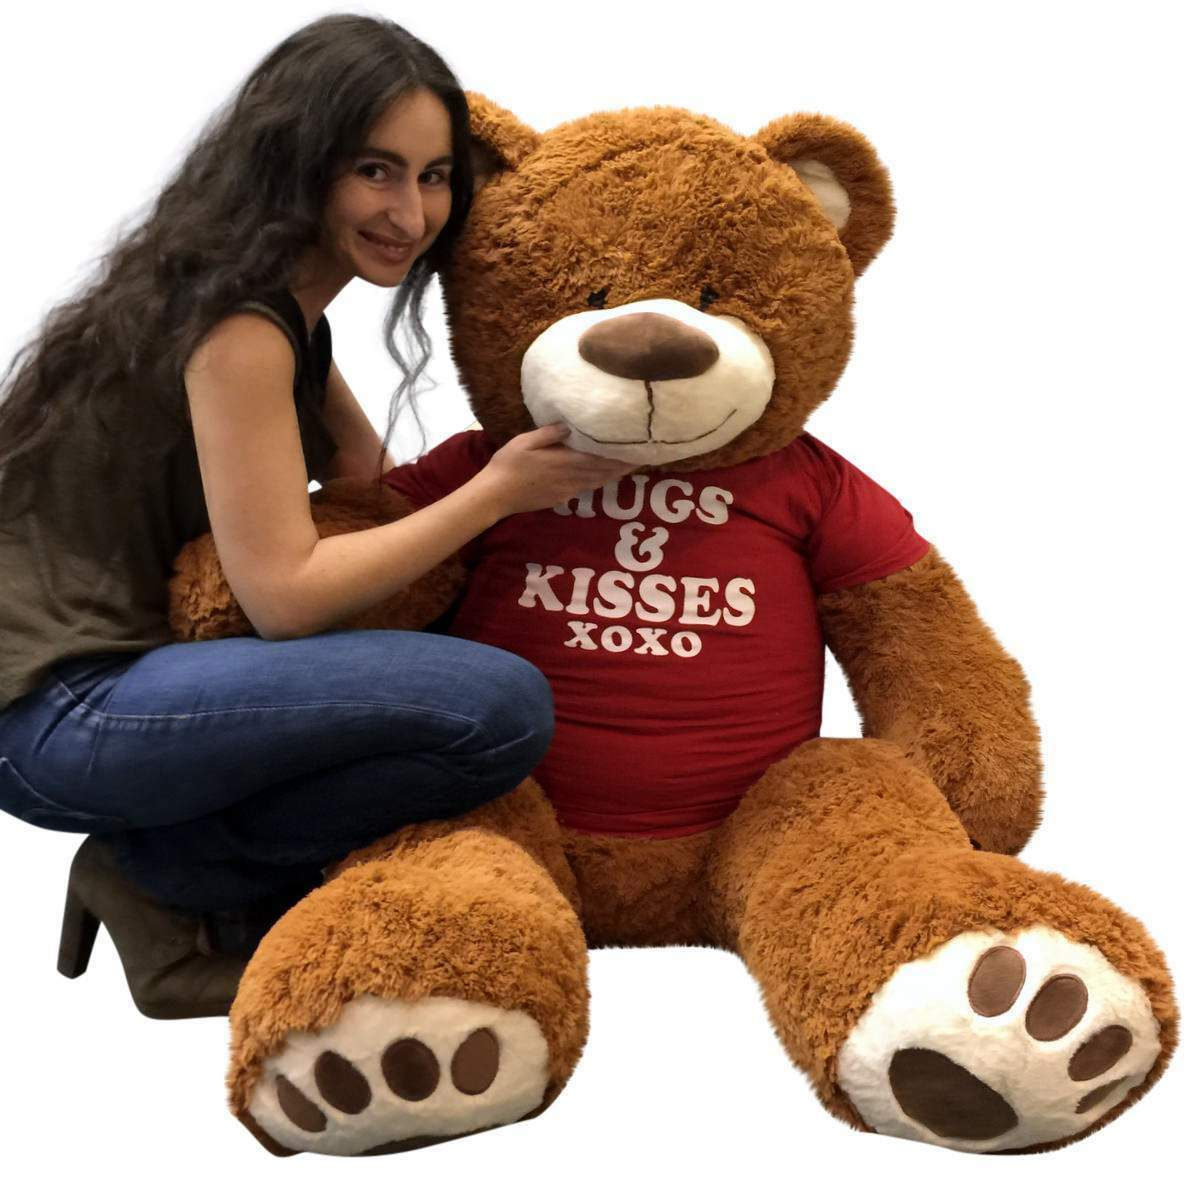 Primary image for 5 Foot Giant Teddy Bear 60 Inch Cinnamon Brown Color Wears HUGS & KISSES T-shirt